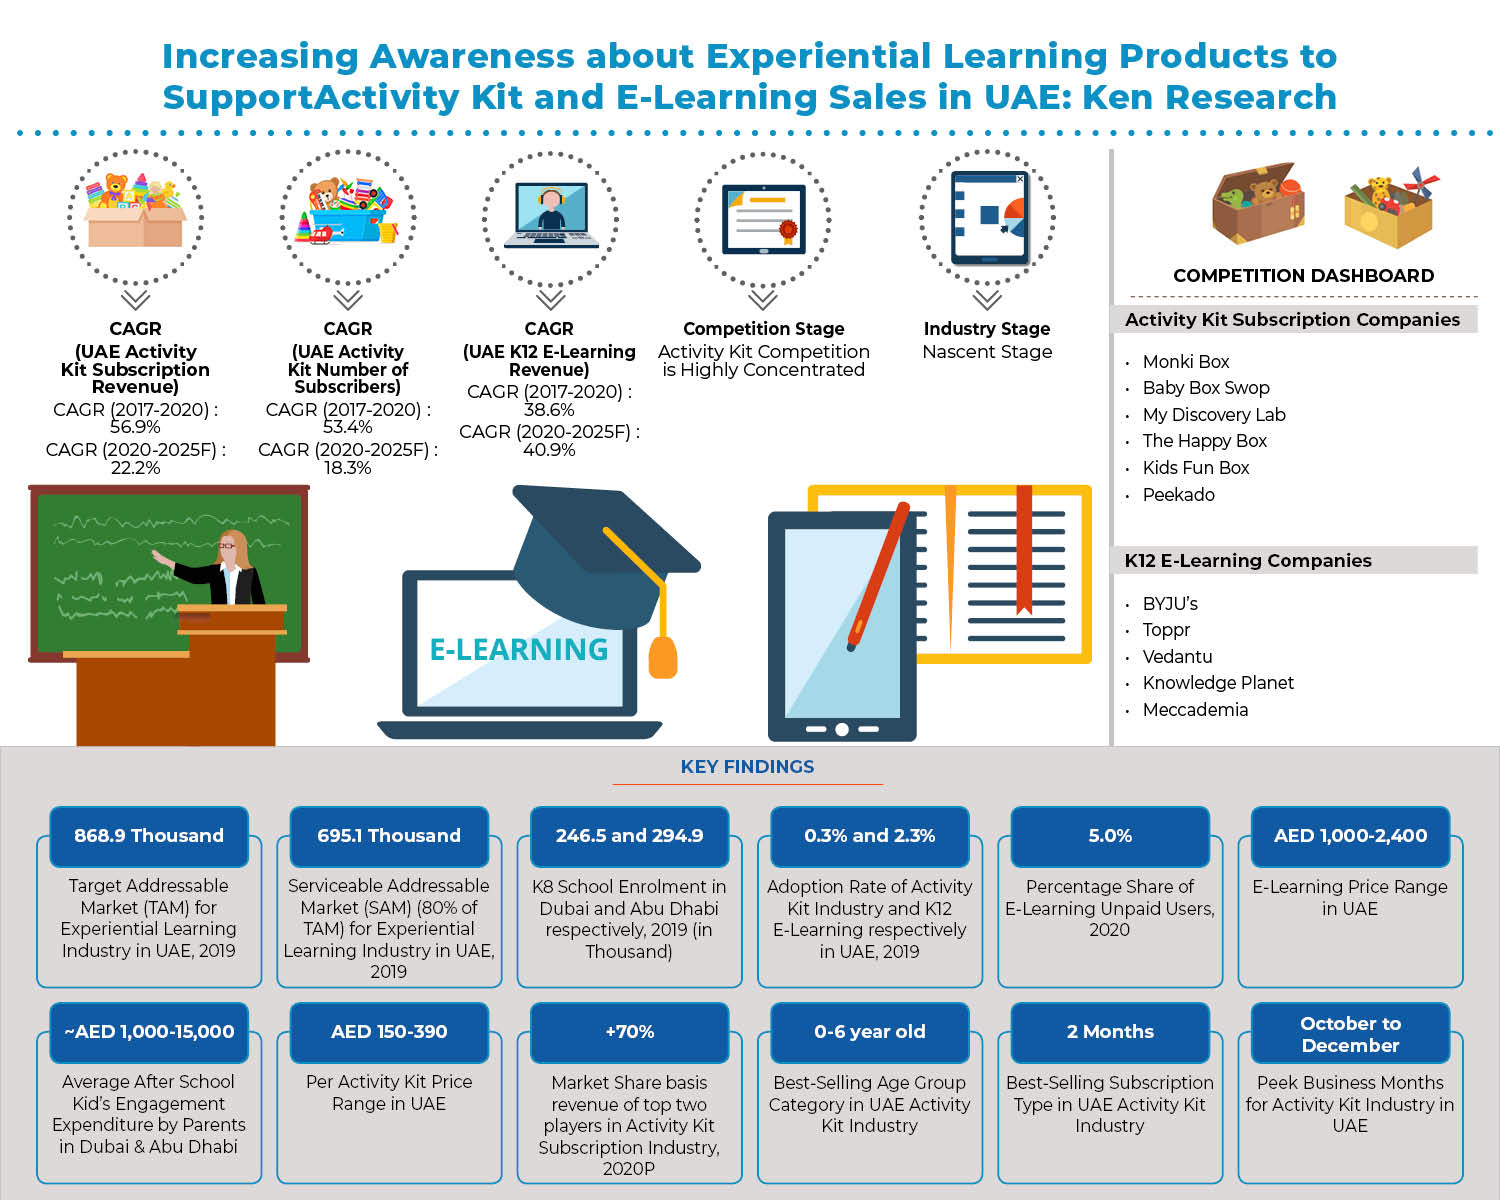 uae-experiential-learning-market